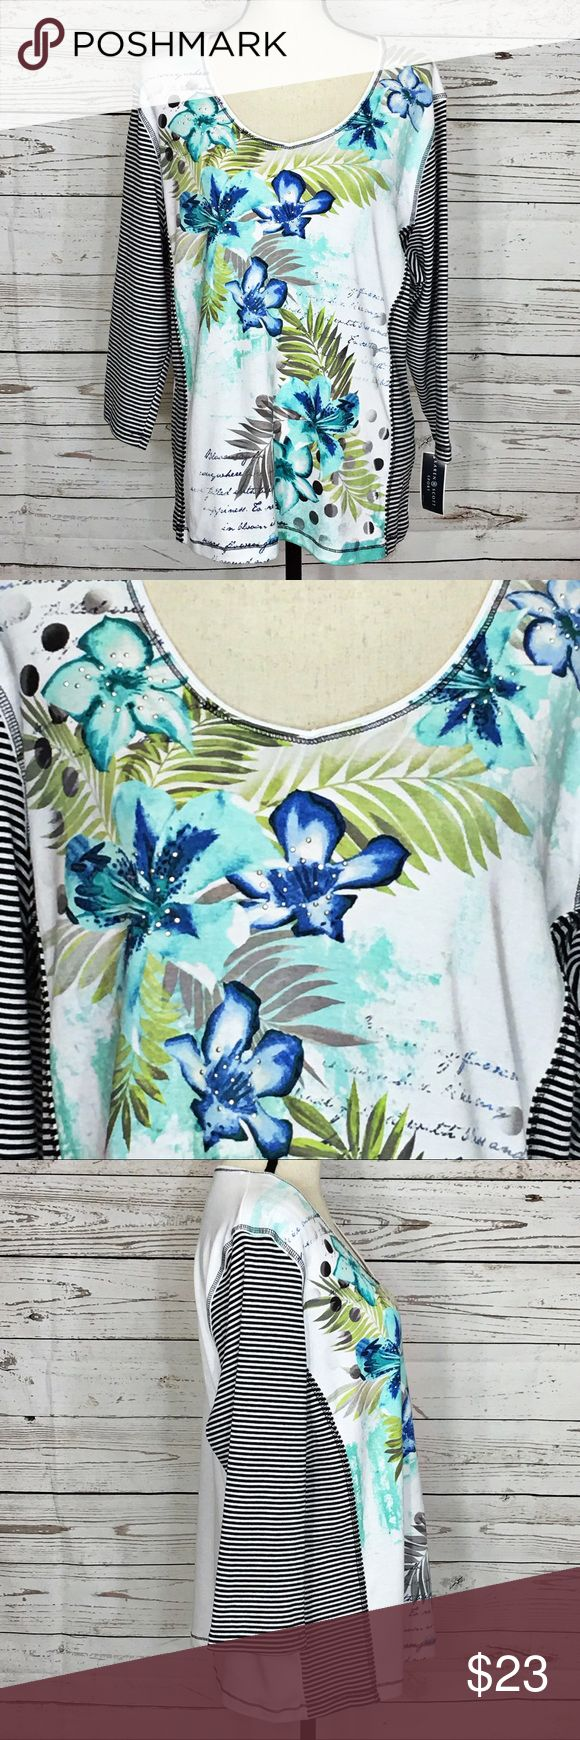 """Karen Scott Sport Floral Striped 3/4 Sleeve Blouse Beautiful teal, blue, green and white embellished stretchy blouse with black and white striped 3/4 sleeves. New with tags. Bust: 46""""; Length in the back from the shoulder: 26"""". Measurements are approximate. Smoke free home. 🌺Thank you for shopping my closet 😊🌺 Karen Scott Tops Blouses"""